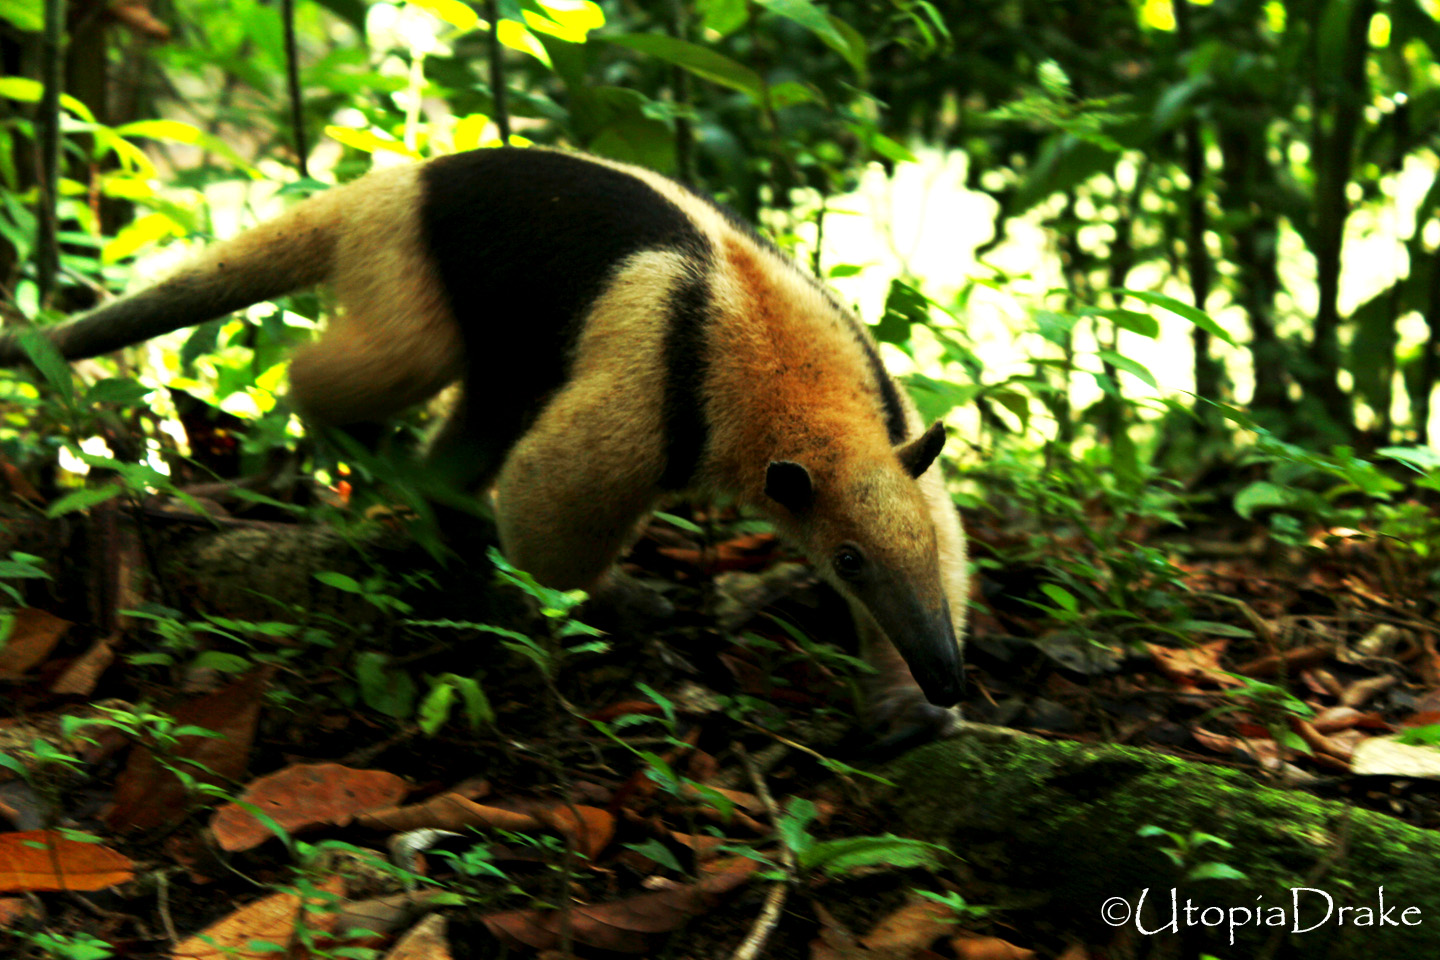 Anteater at Corcovado National Park